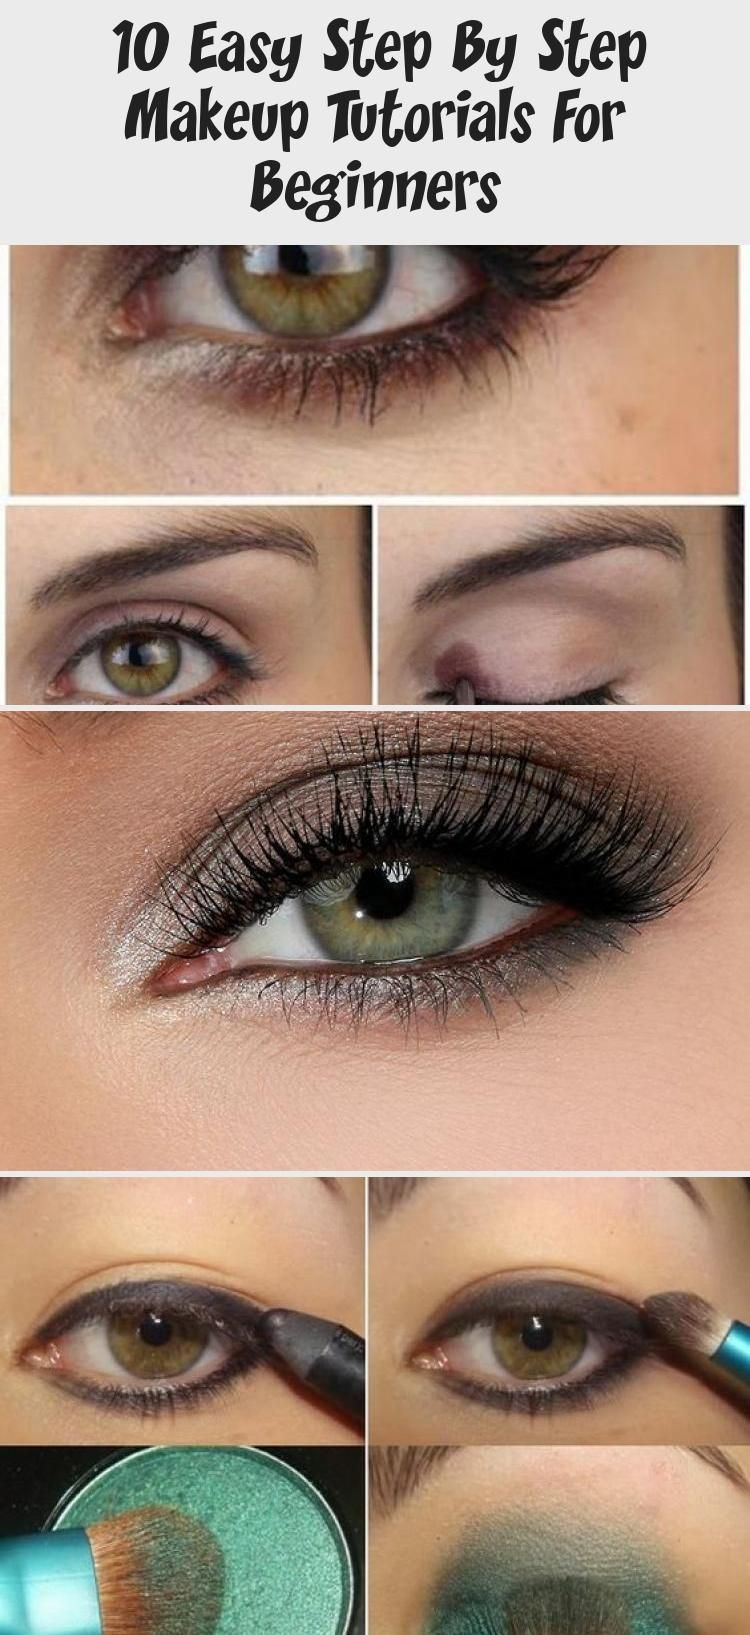 10 Easy Step By Step Makeup Tutorials For Beginners Pinokyo 10 Easy Step By Step Makeu In 2020 Makeup Tutorial For Beginners Makeup Tutorial Makeup Tutorial Video